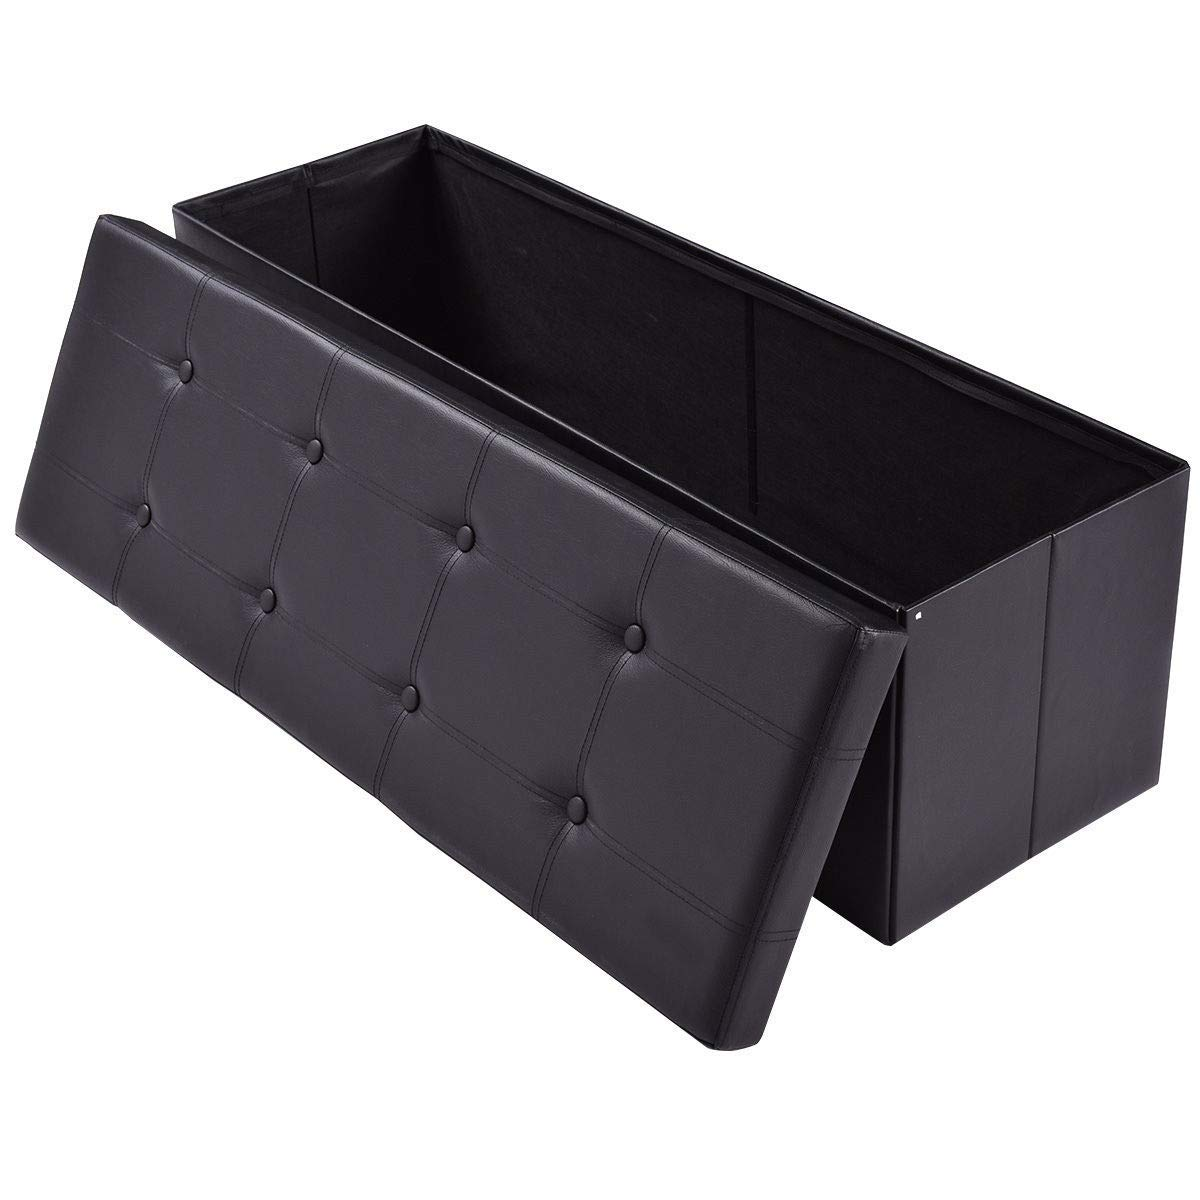 AuAg  43'' Folding Storage Ottoman Bench Faux Leather Toy Box/Chest Coffee Table/Foot Rest/Storage Easy to Assemble (Black, 43'') by AuAg